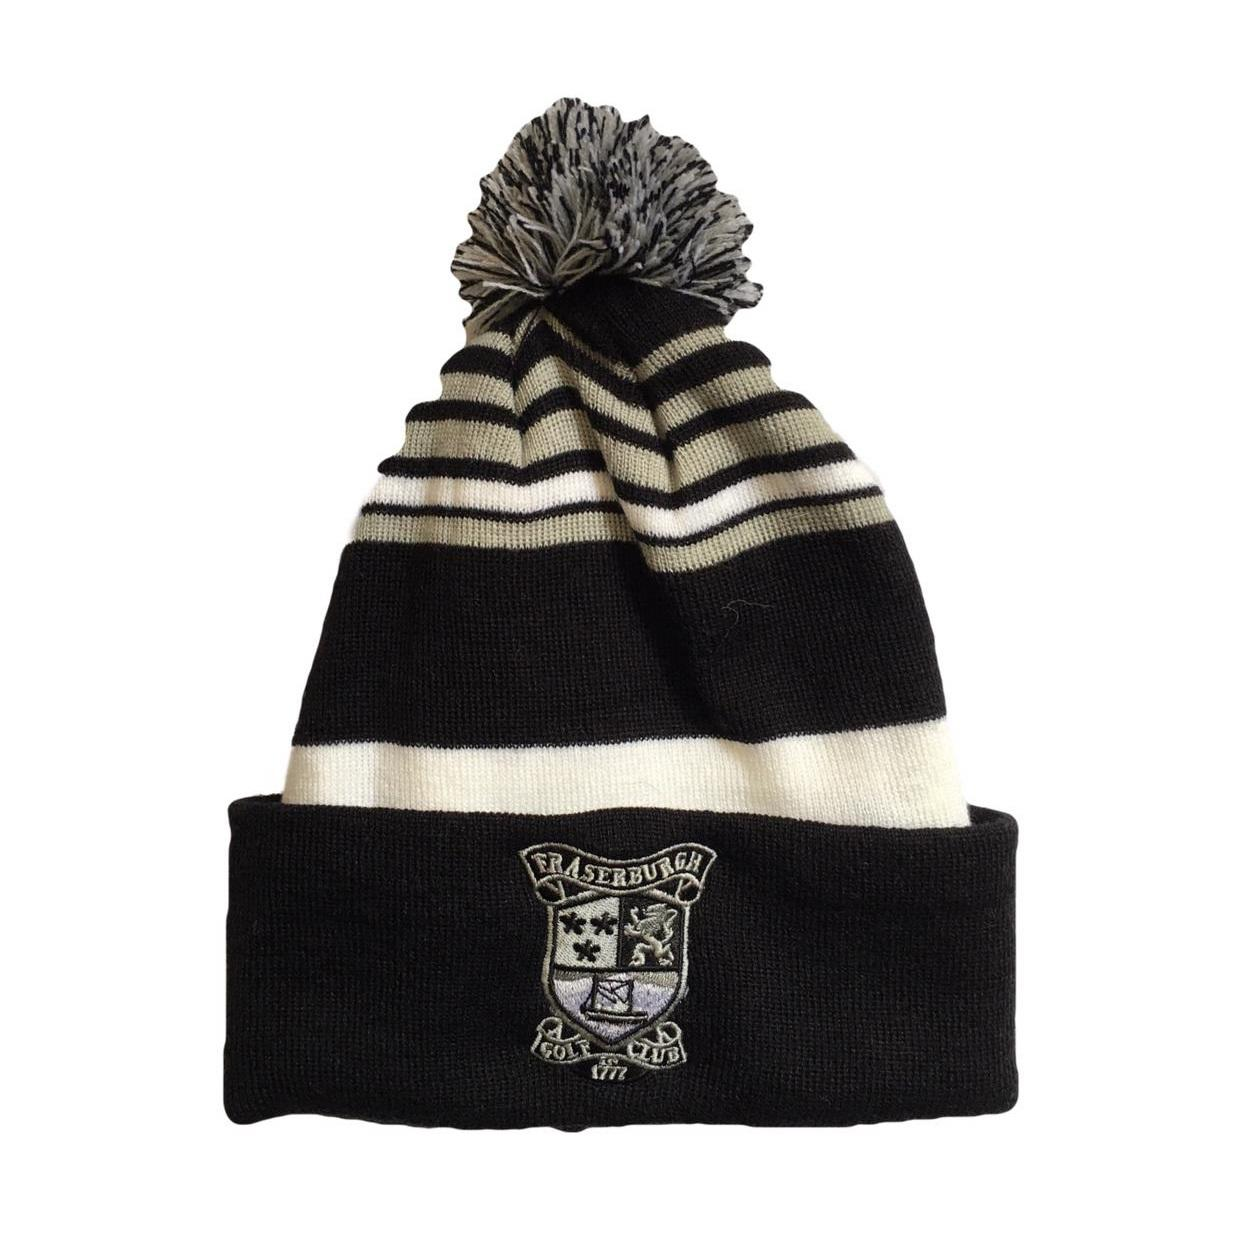 Fraserburgh Golf Knit Bobble Hat Black White